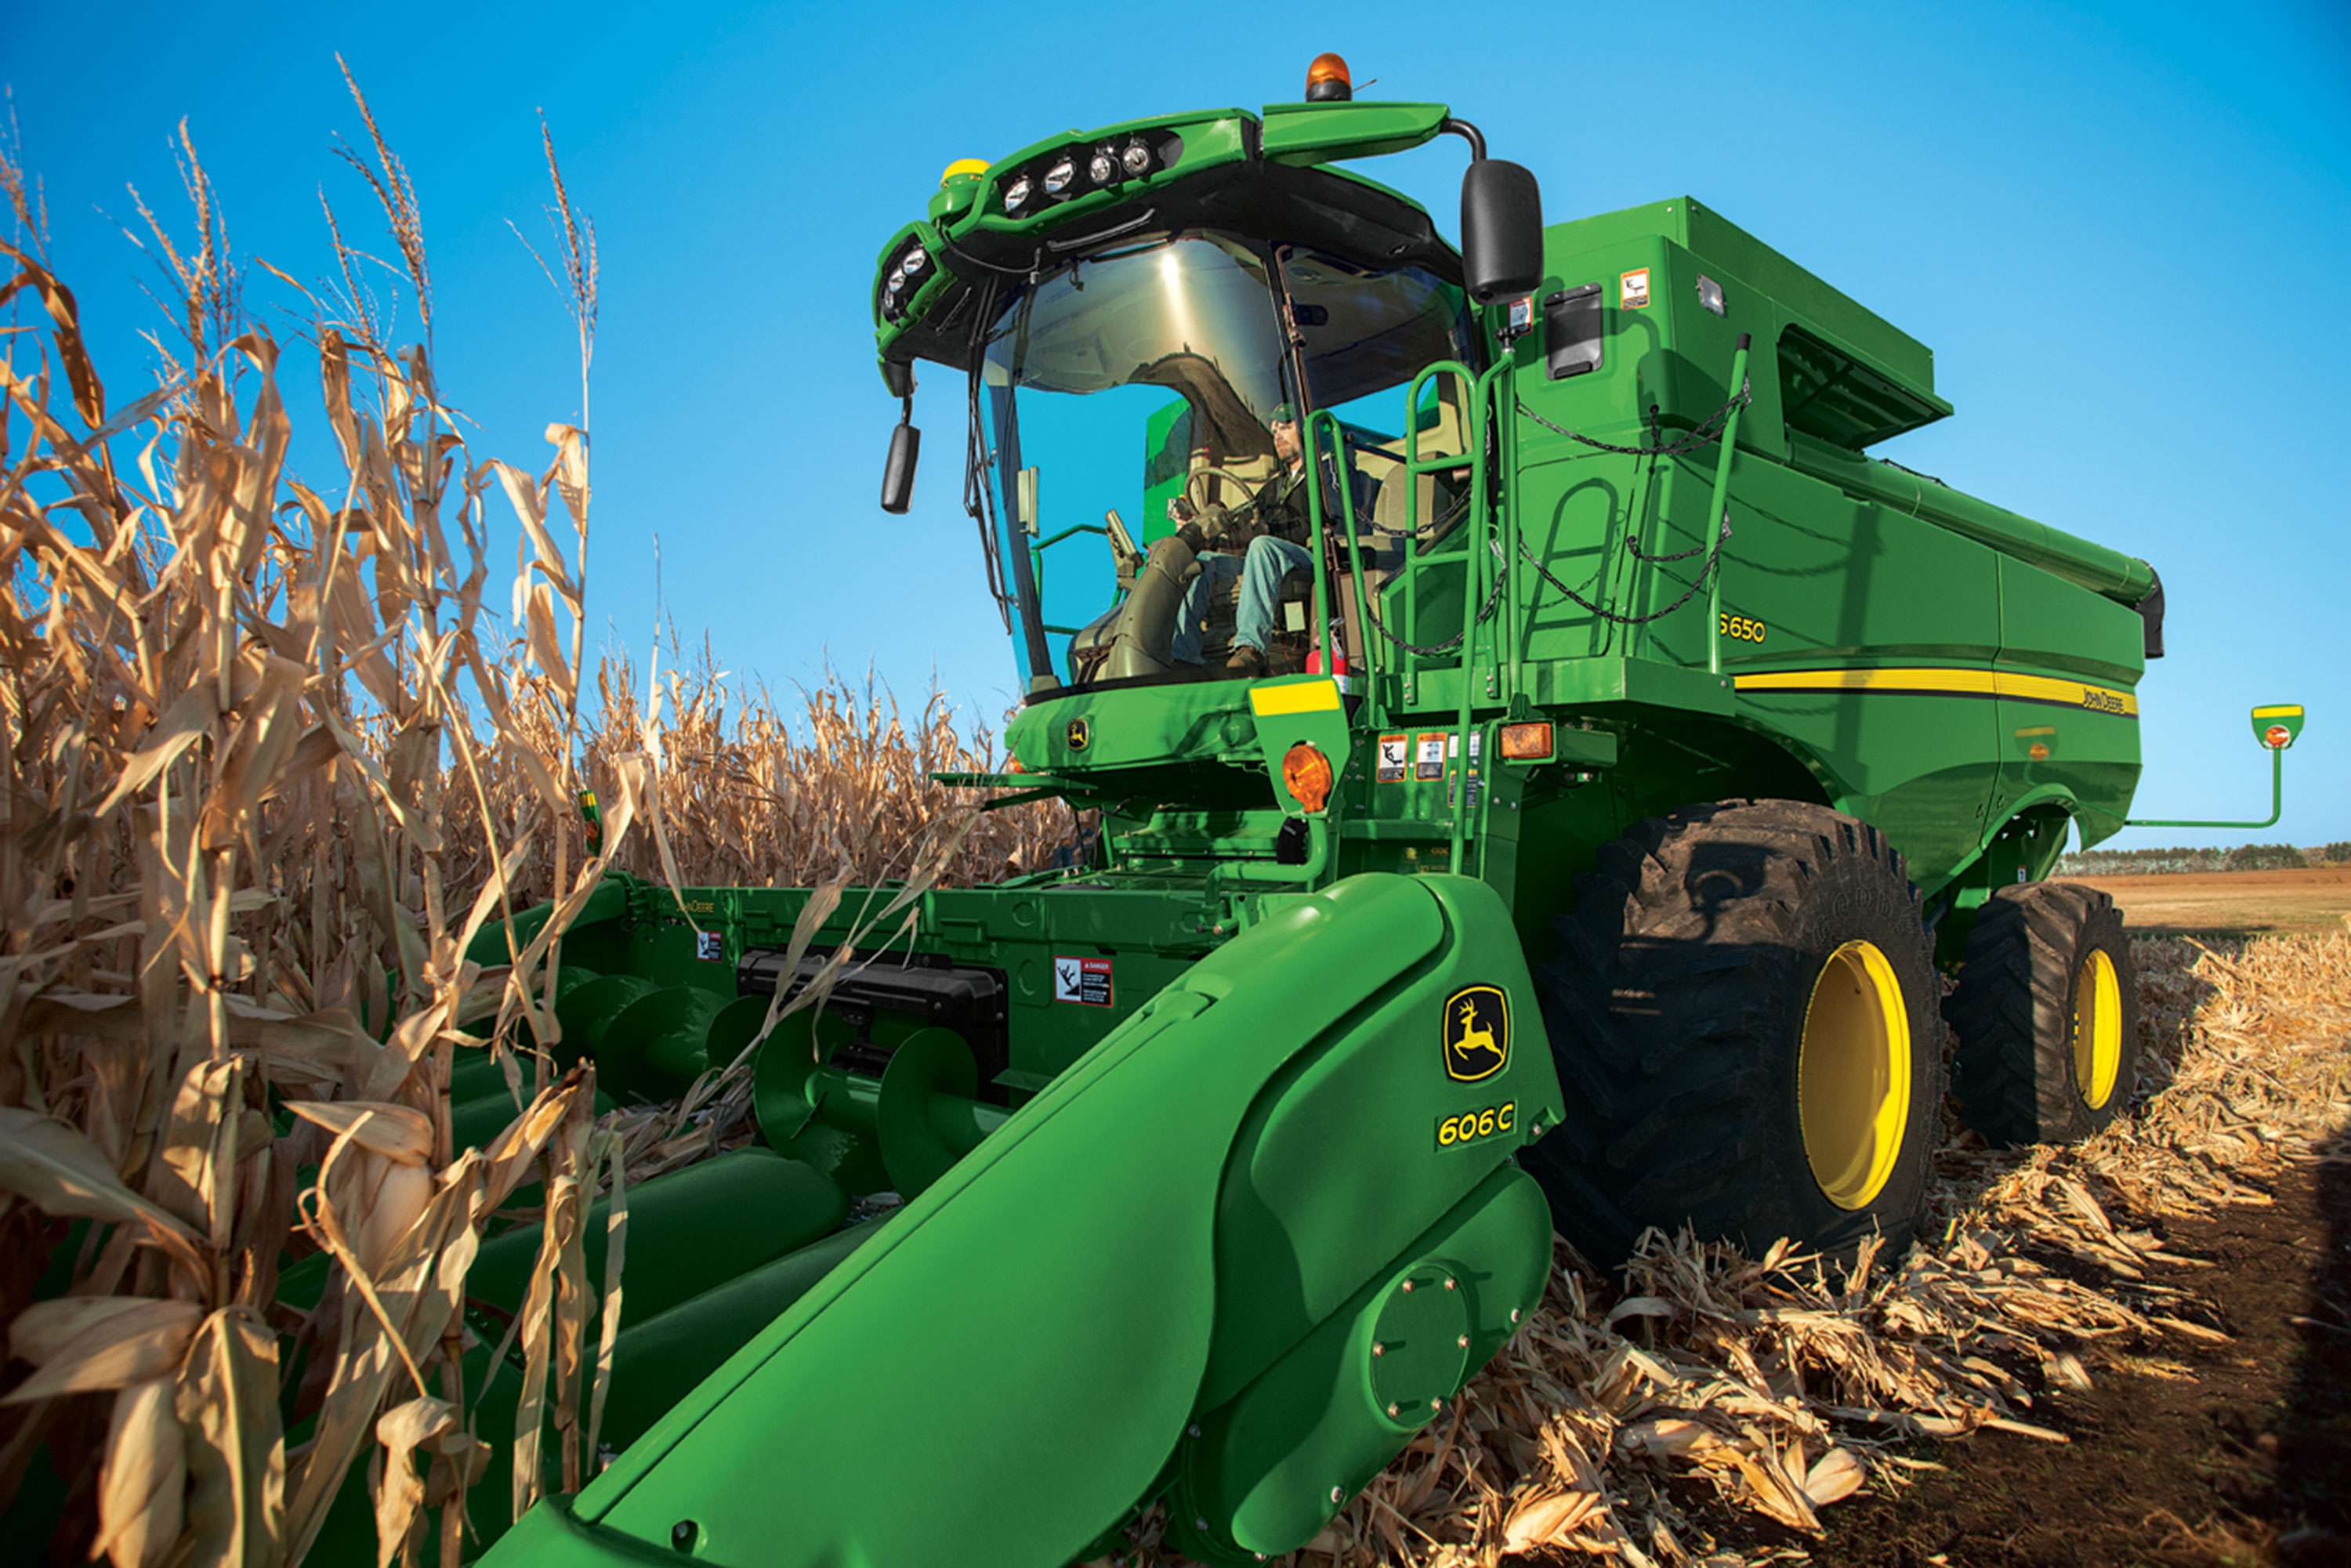 STS Combine with 606C Corn Header